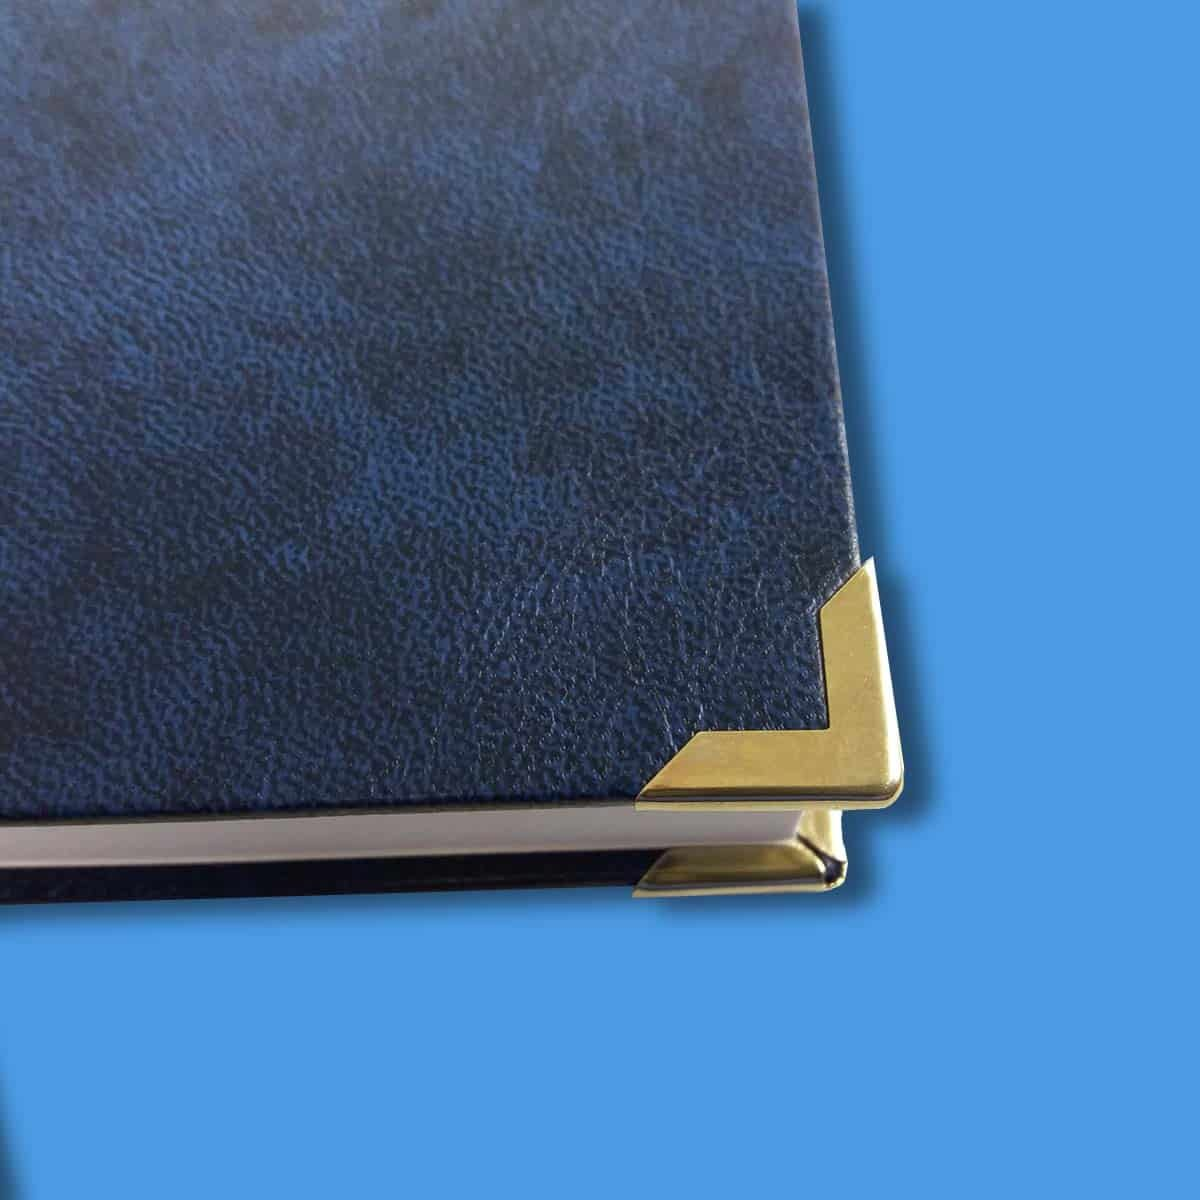 Hardcover in blau mit Buchecken in gold